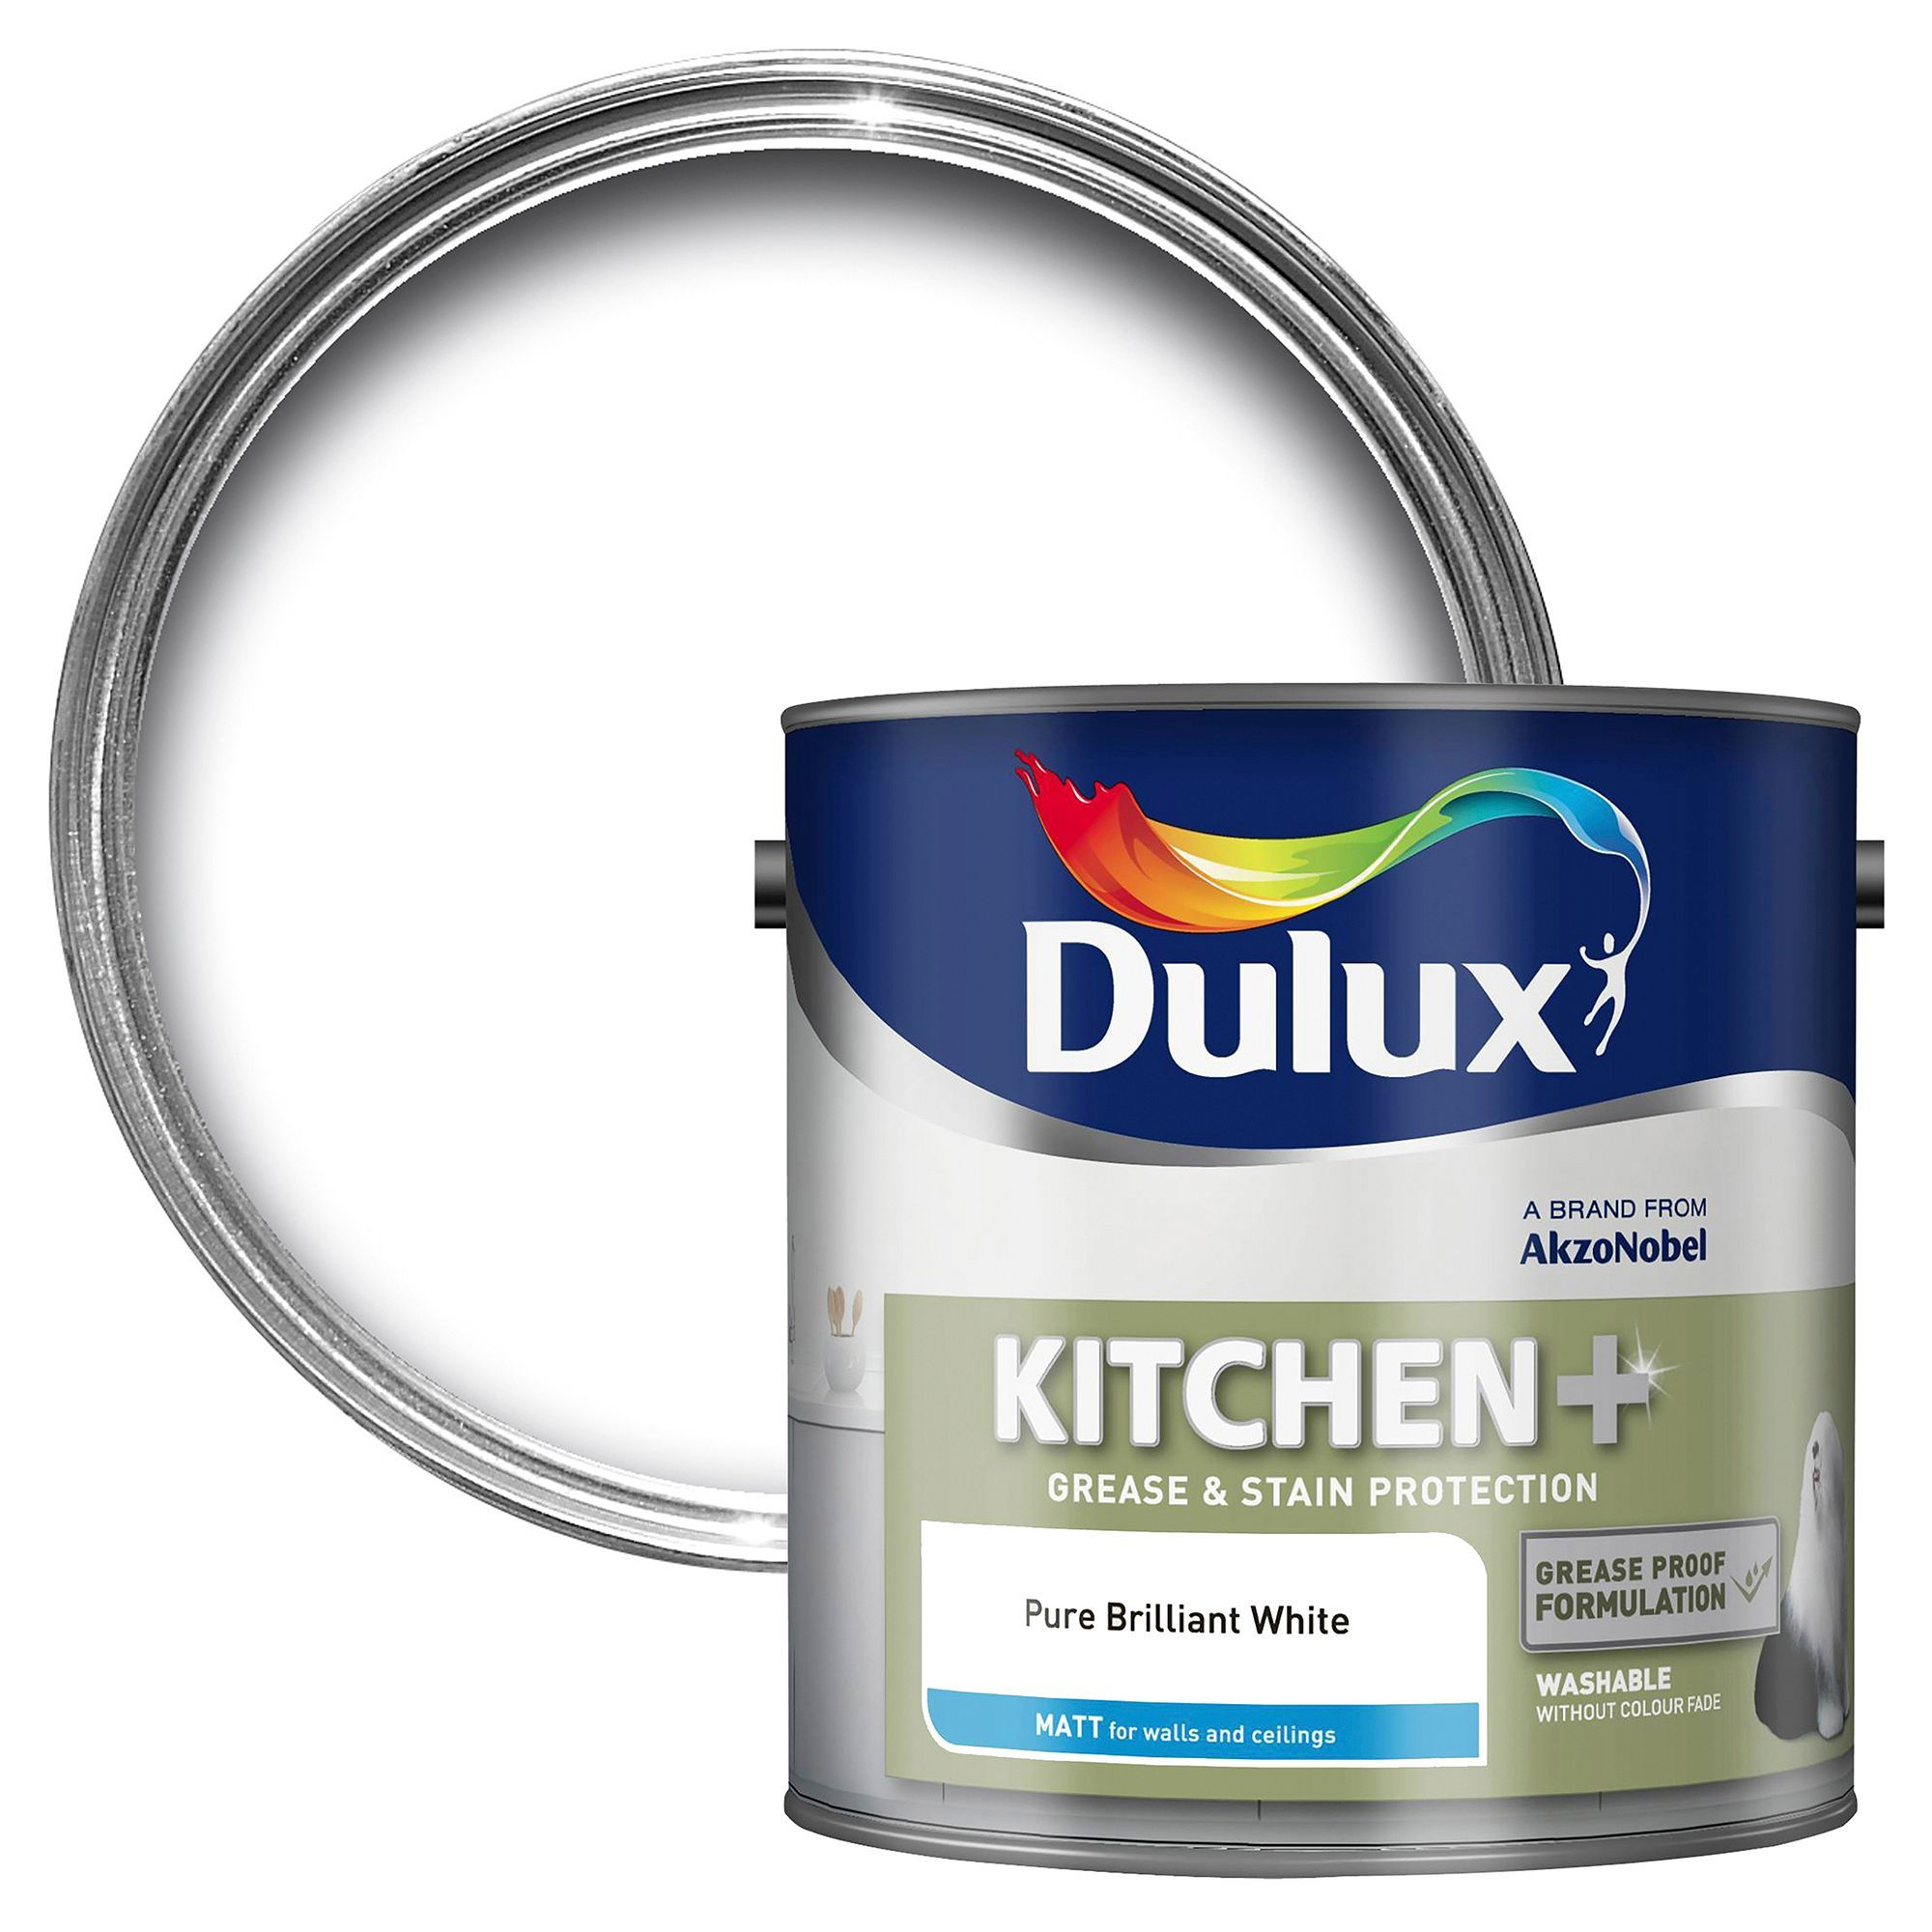 Dulux Kitchen Pure Brilliant White Matt Emulsion Paint 2 5l Departments Diy At B Amp Q Dulux Pure Products Dulux Light And Space